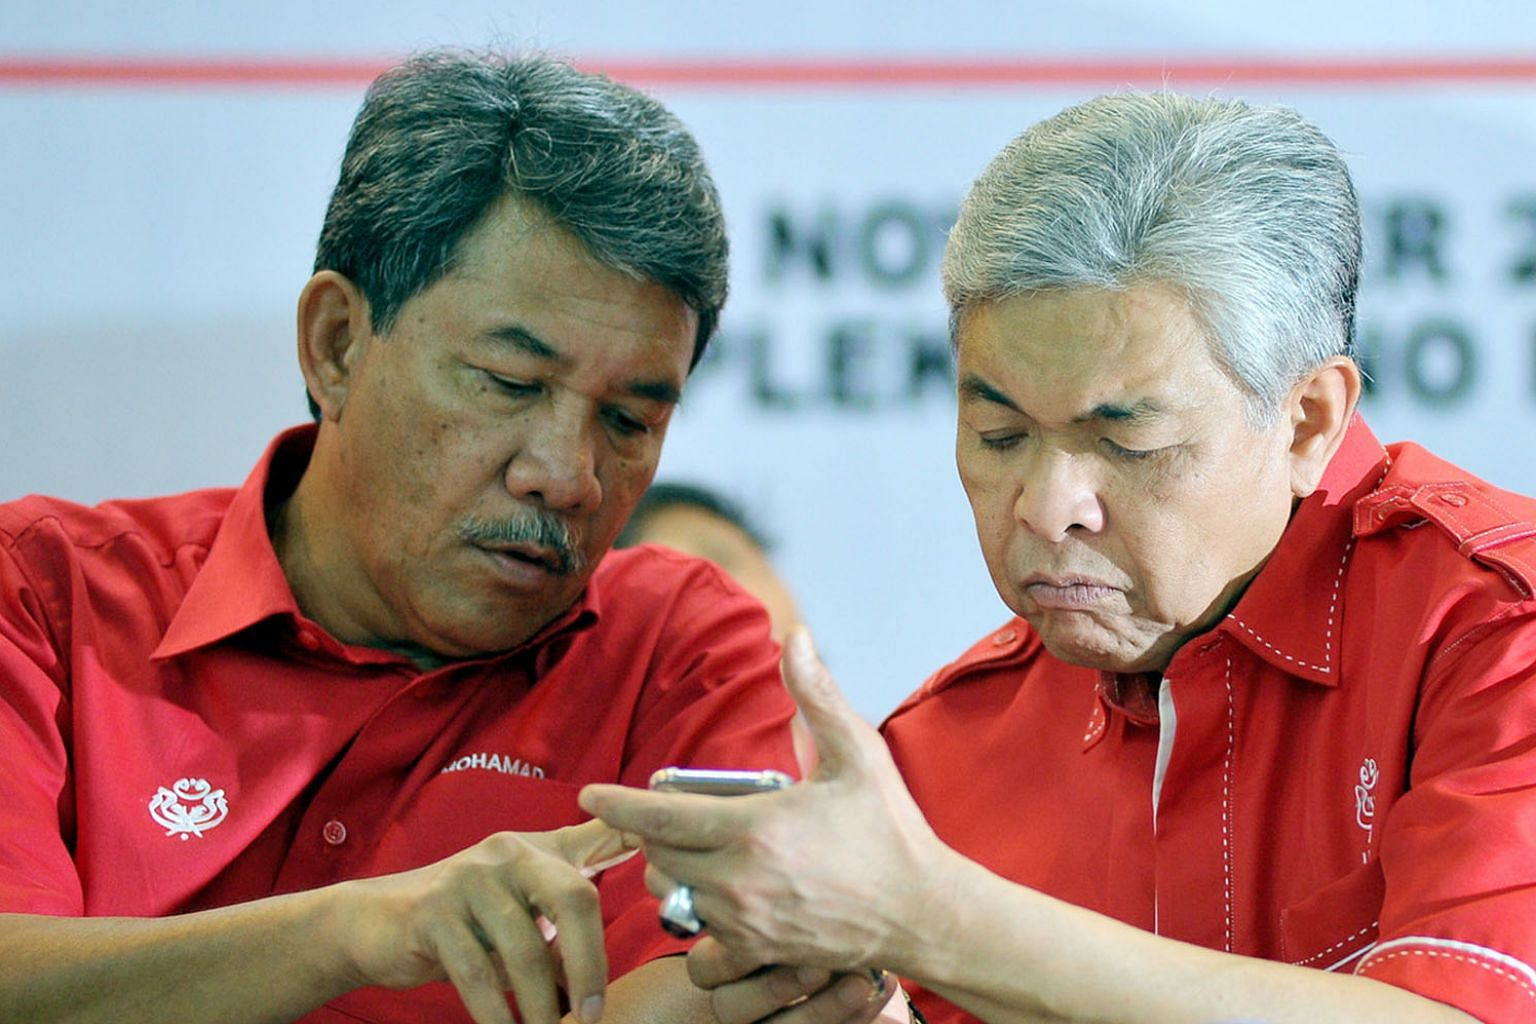 Datuk Seri Mohamad Hasan (left) and Umno president Ahmad Zahid Hamidi (right) at a party meeting in Selangor last month.